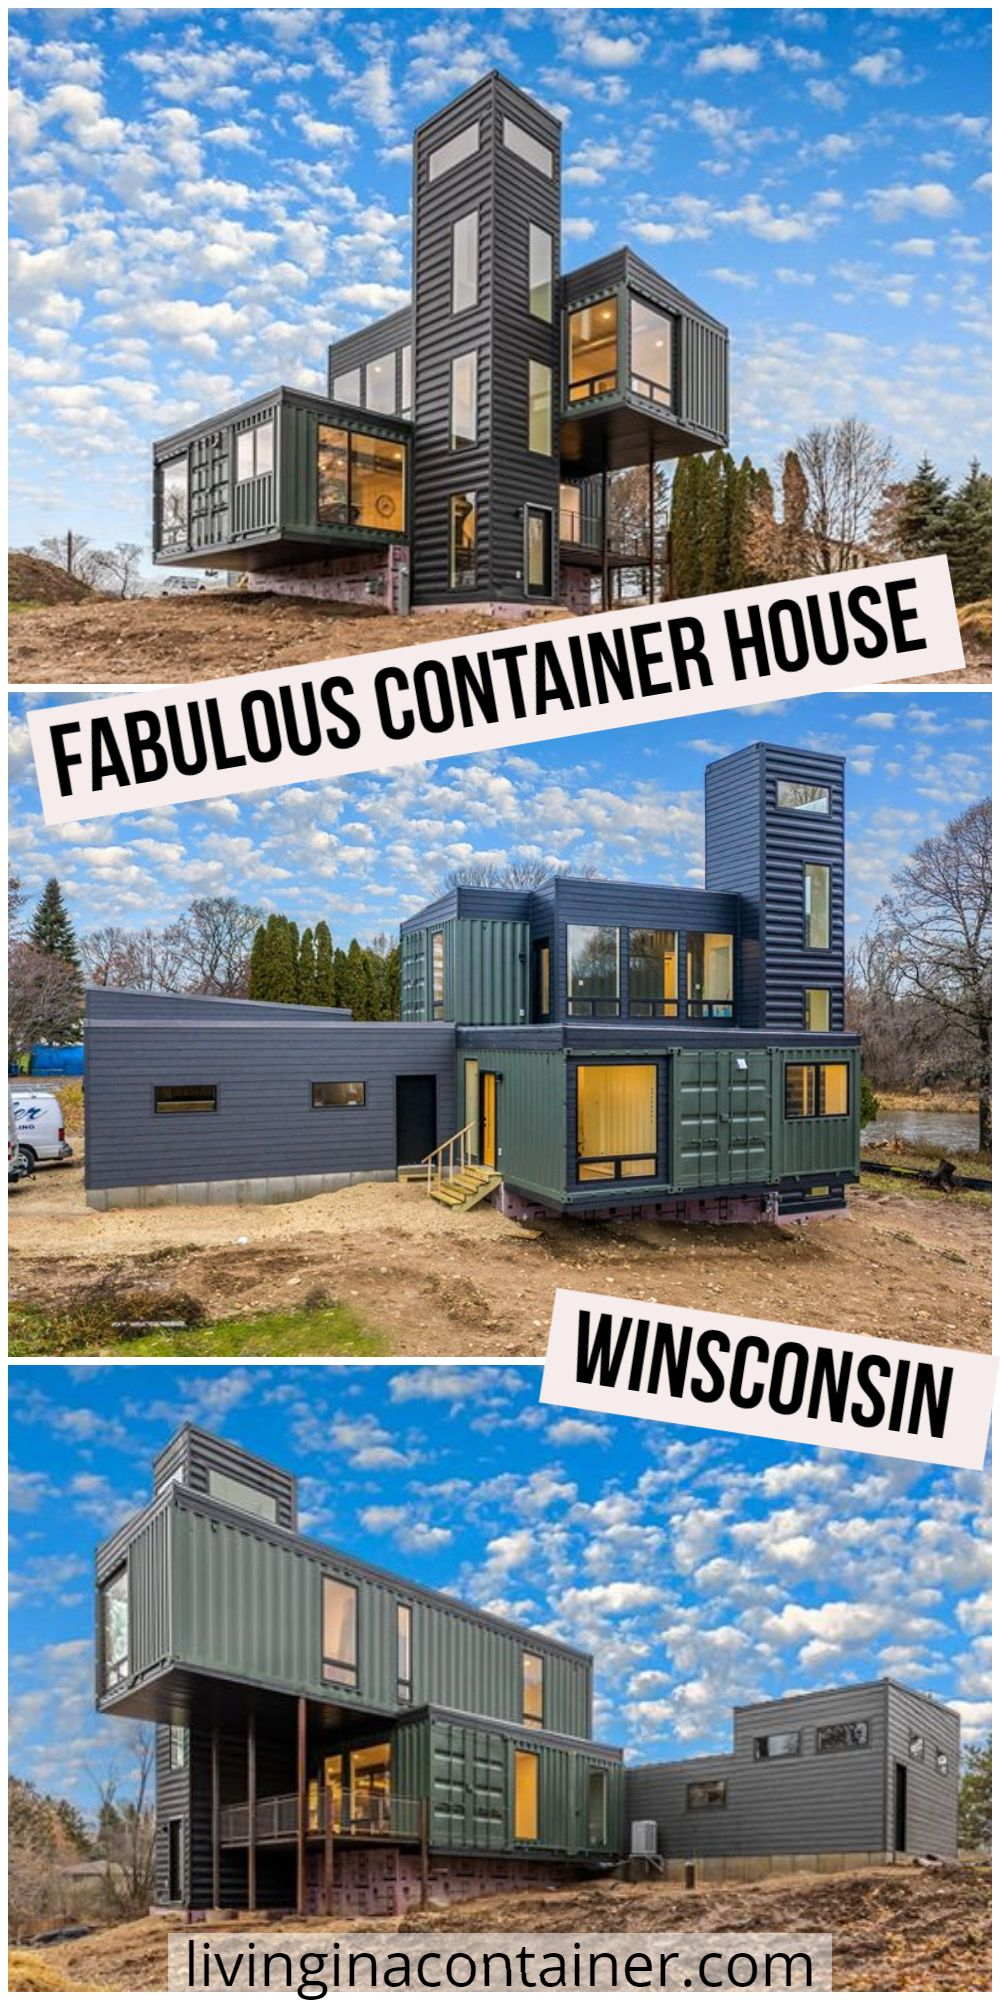 Fabulous Container House in Winsconsin